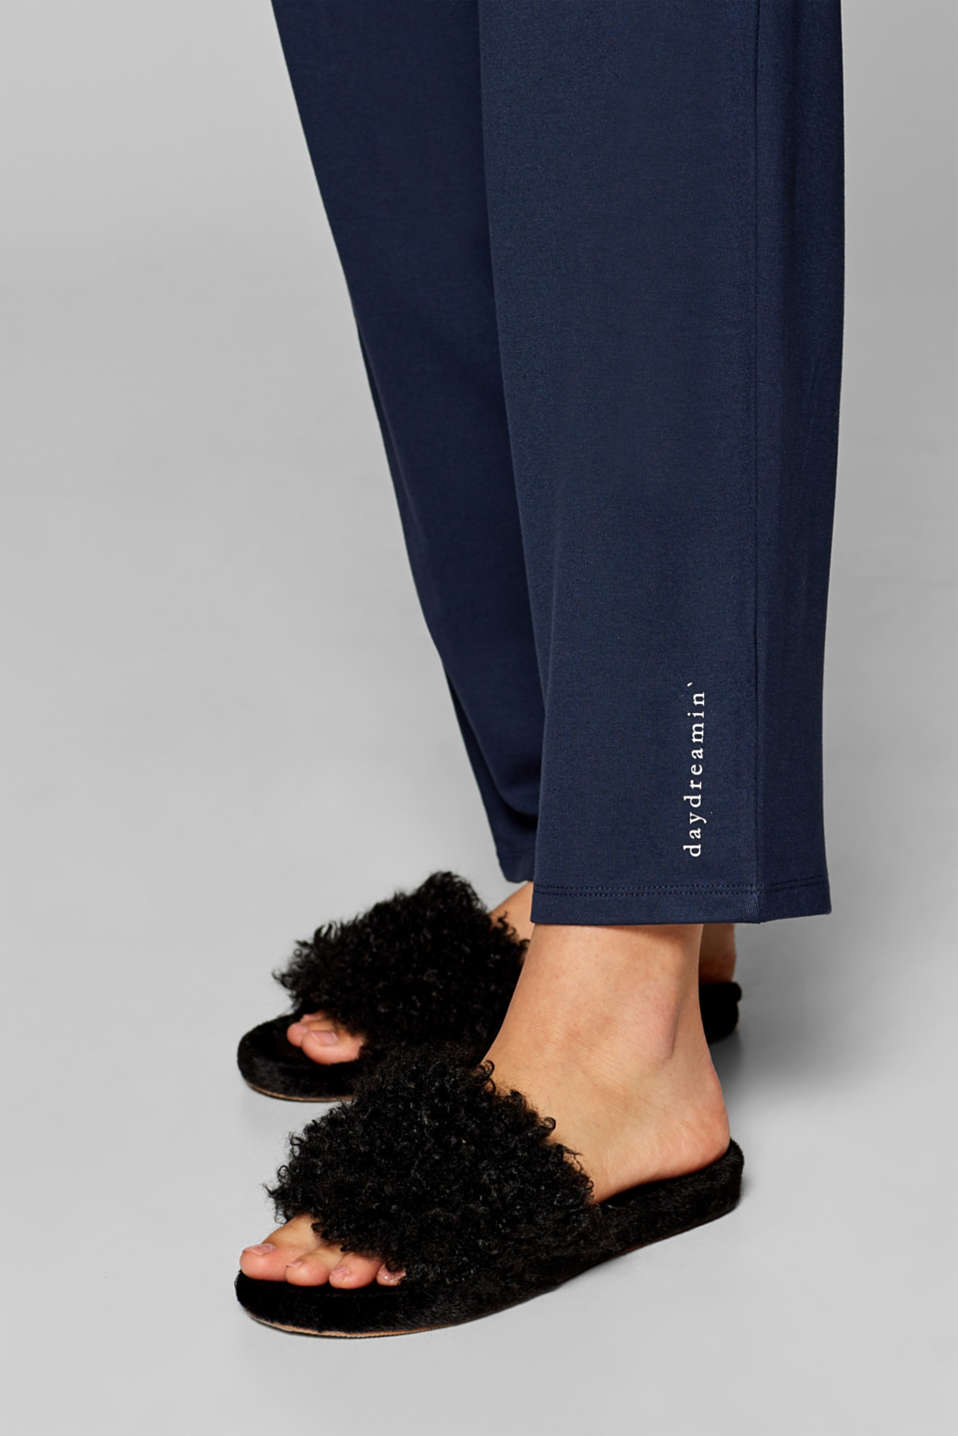 Oversized trousers in thick stretch jersey, NAVY, detail image number 1